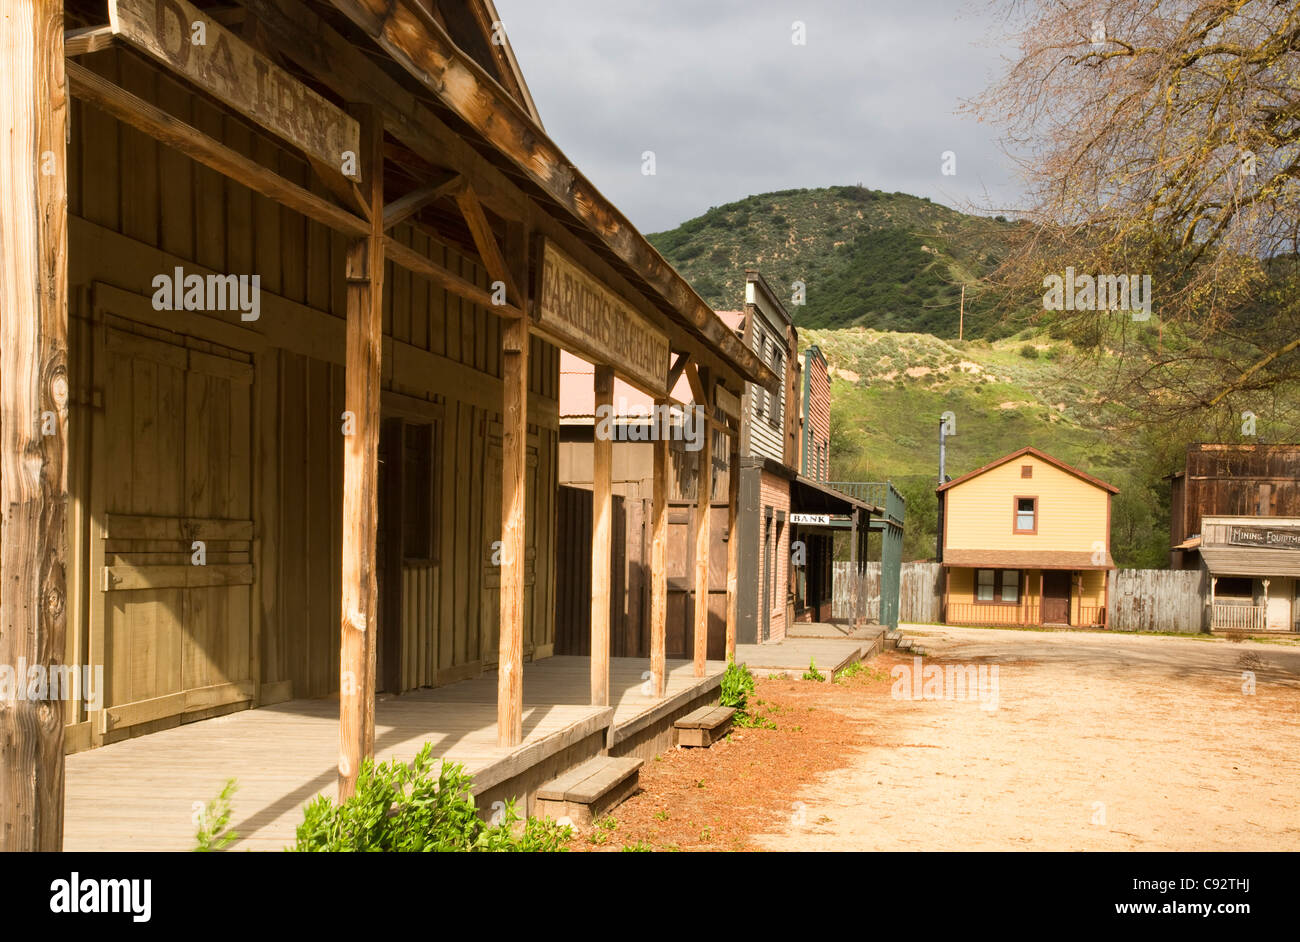 CALIFORNIA - Old western town built as a set for filming movies at the Paramount Ranch in the Santa Monica Mountains. - Stock Image